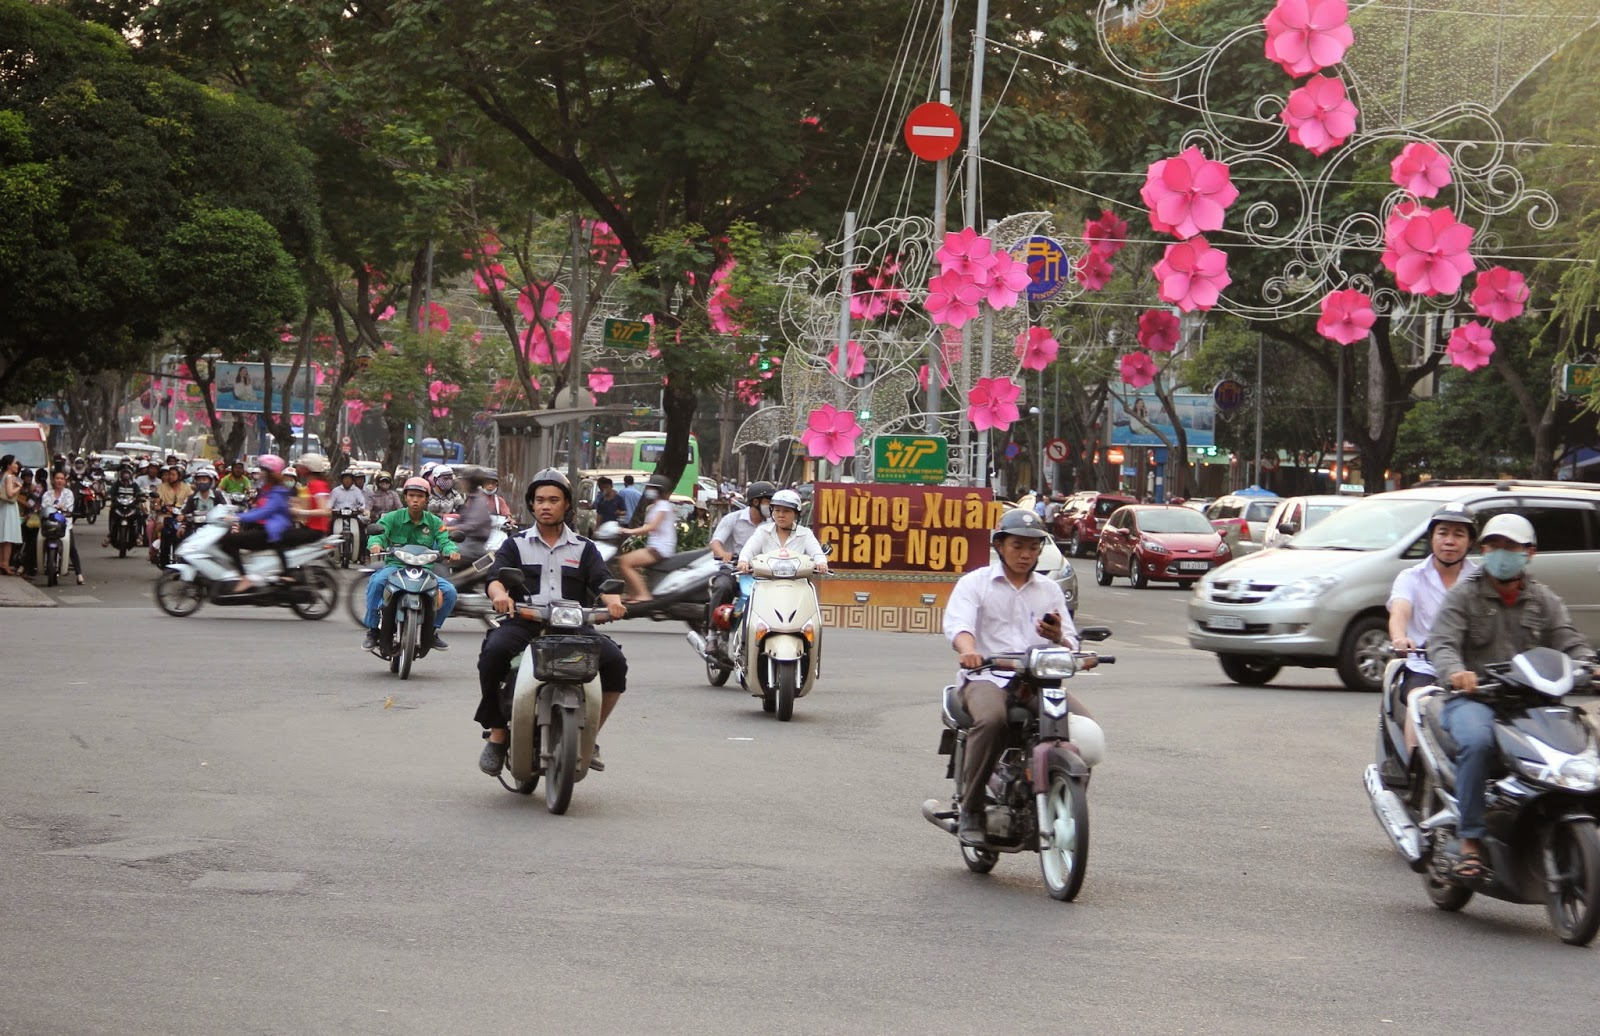 Welcome to Ho Chi Minh City-motorbike traffic and Tet holiday decorations.